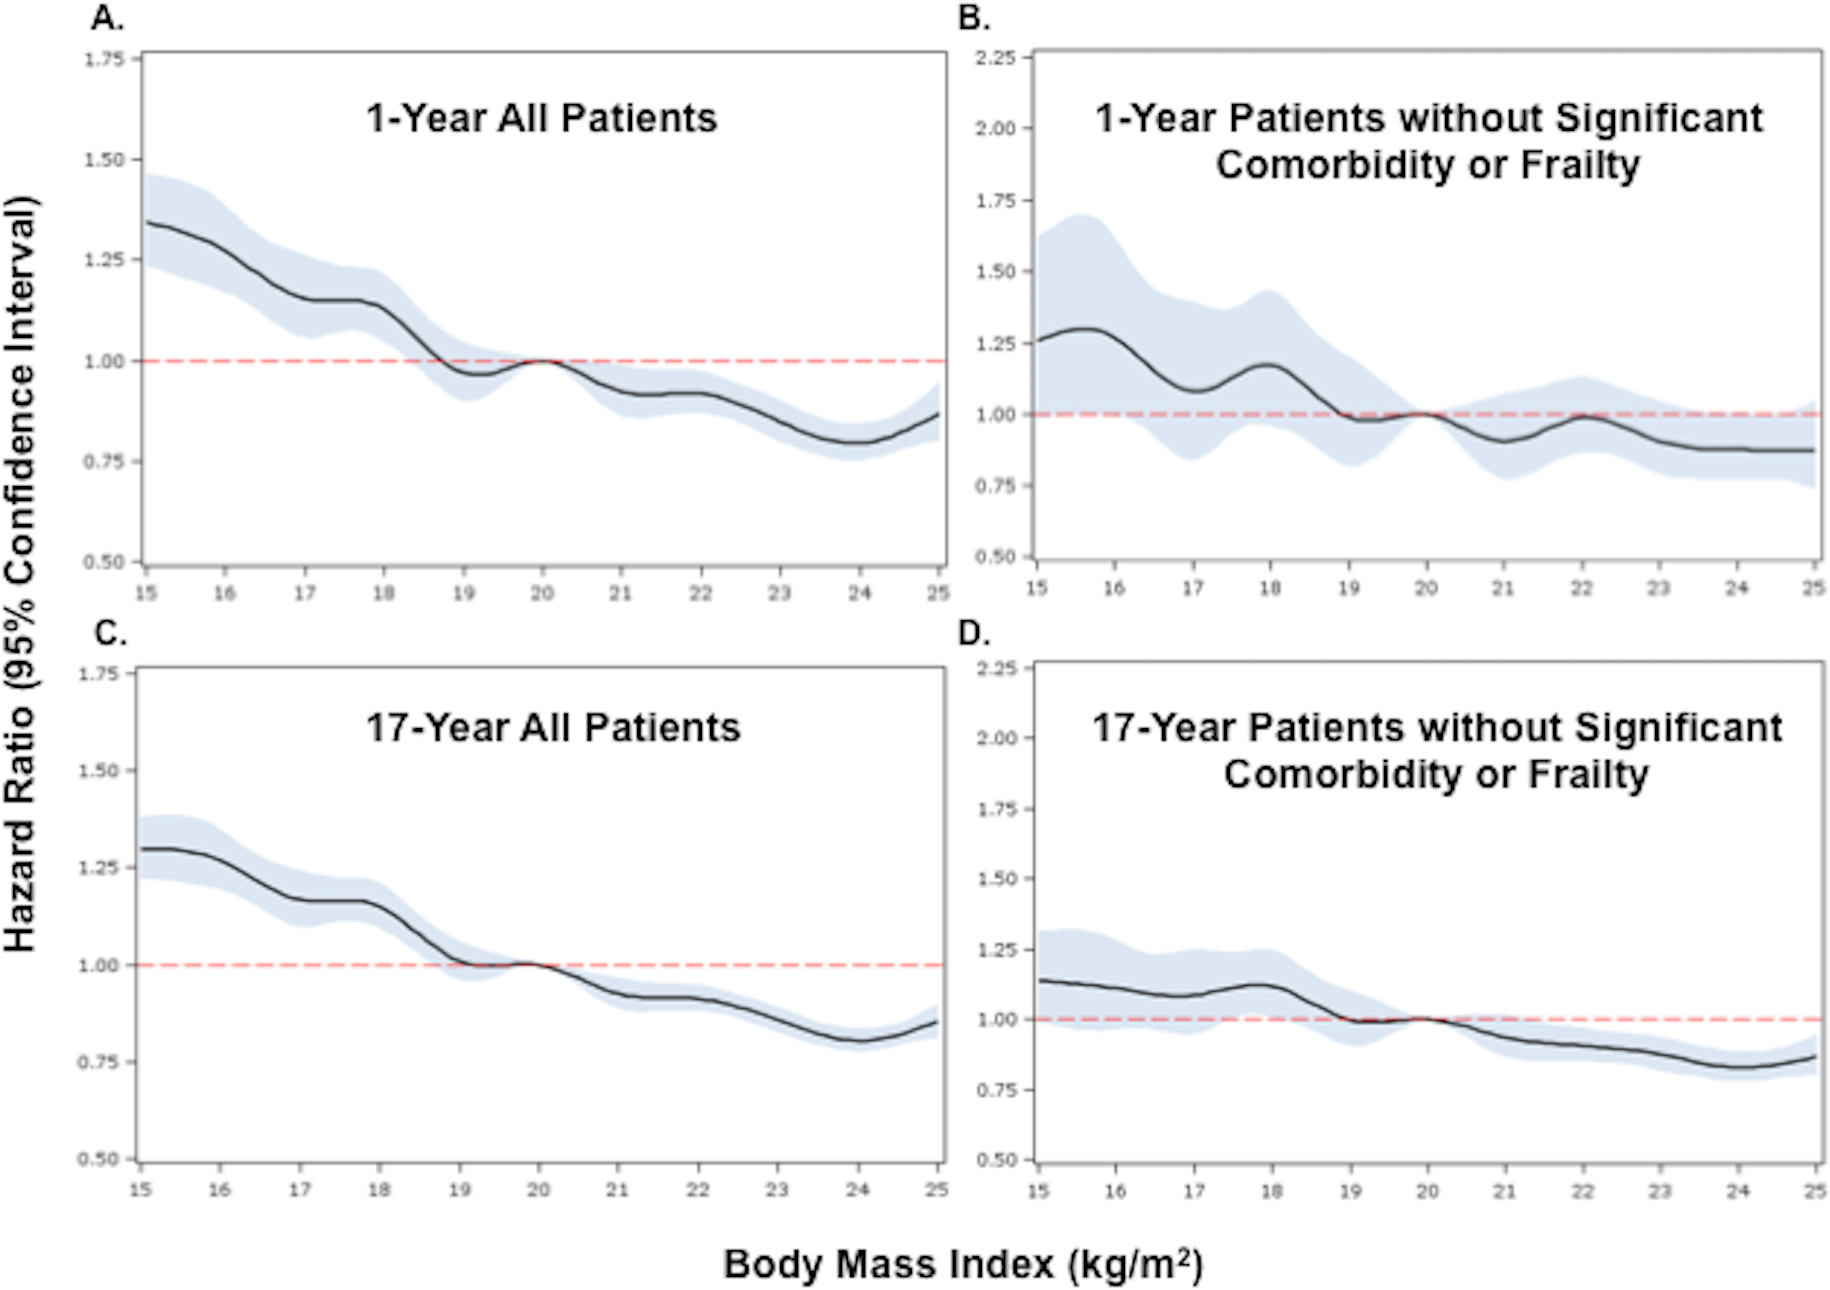 Adjusted Cox proportional hazards regression restricted cubic spline models for all patients and for the subset of patients without significant comorbidity or frailty.